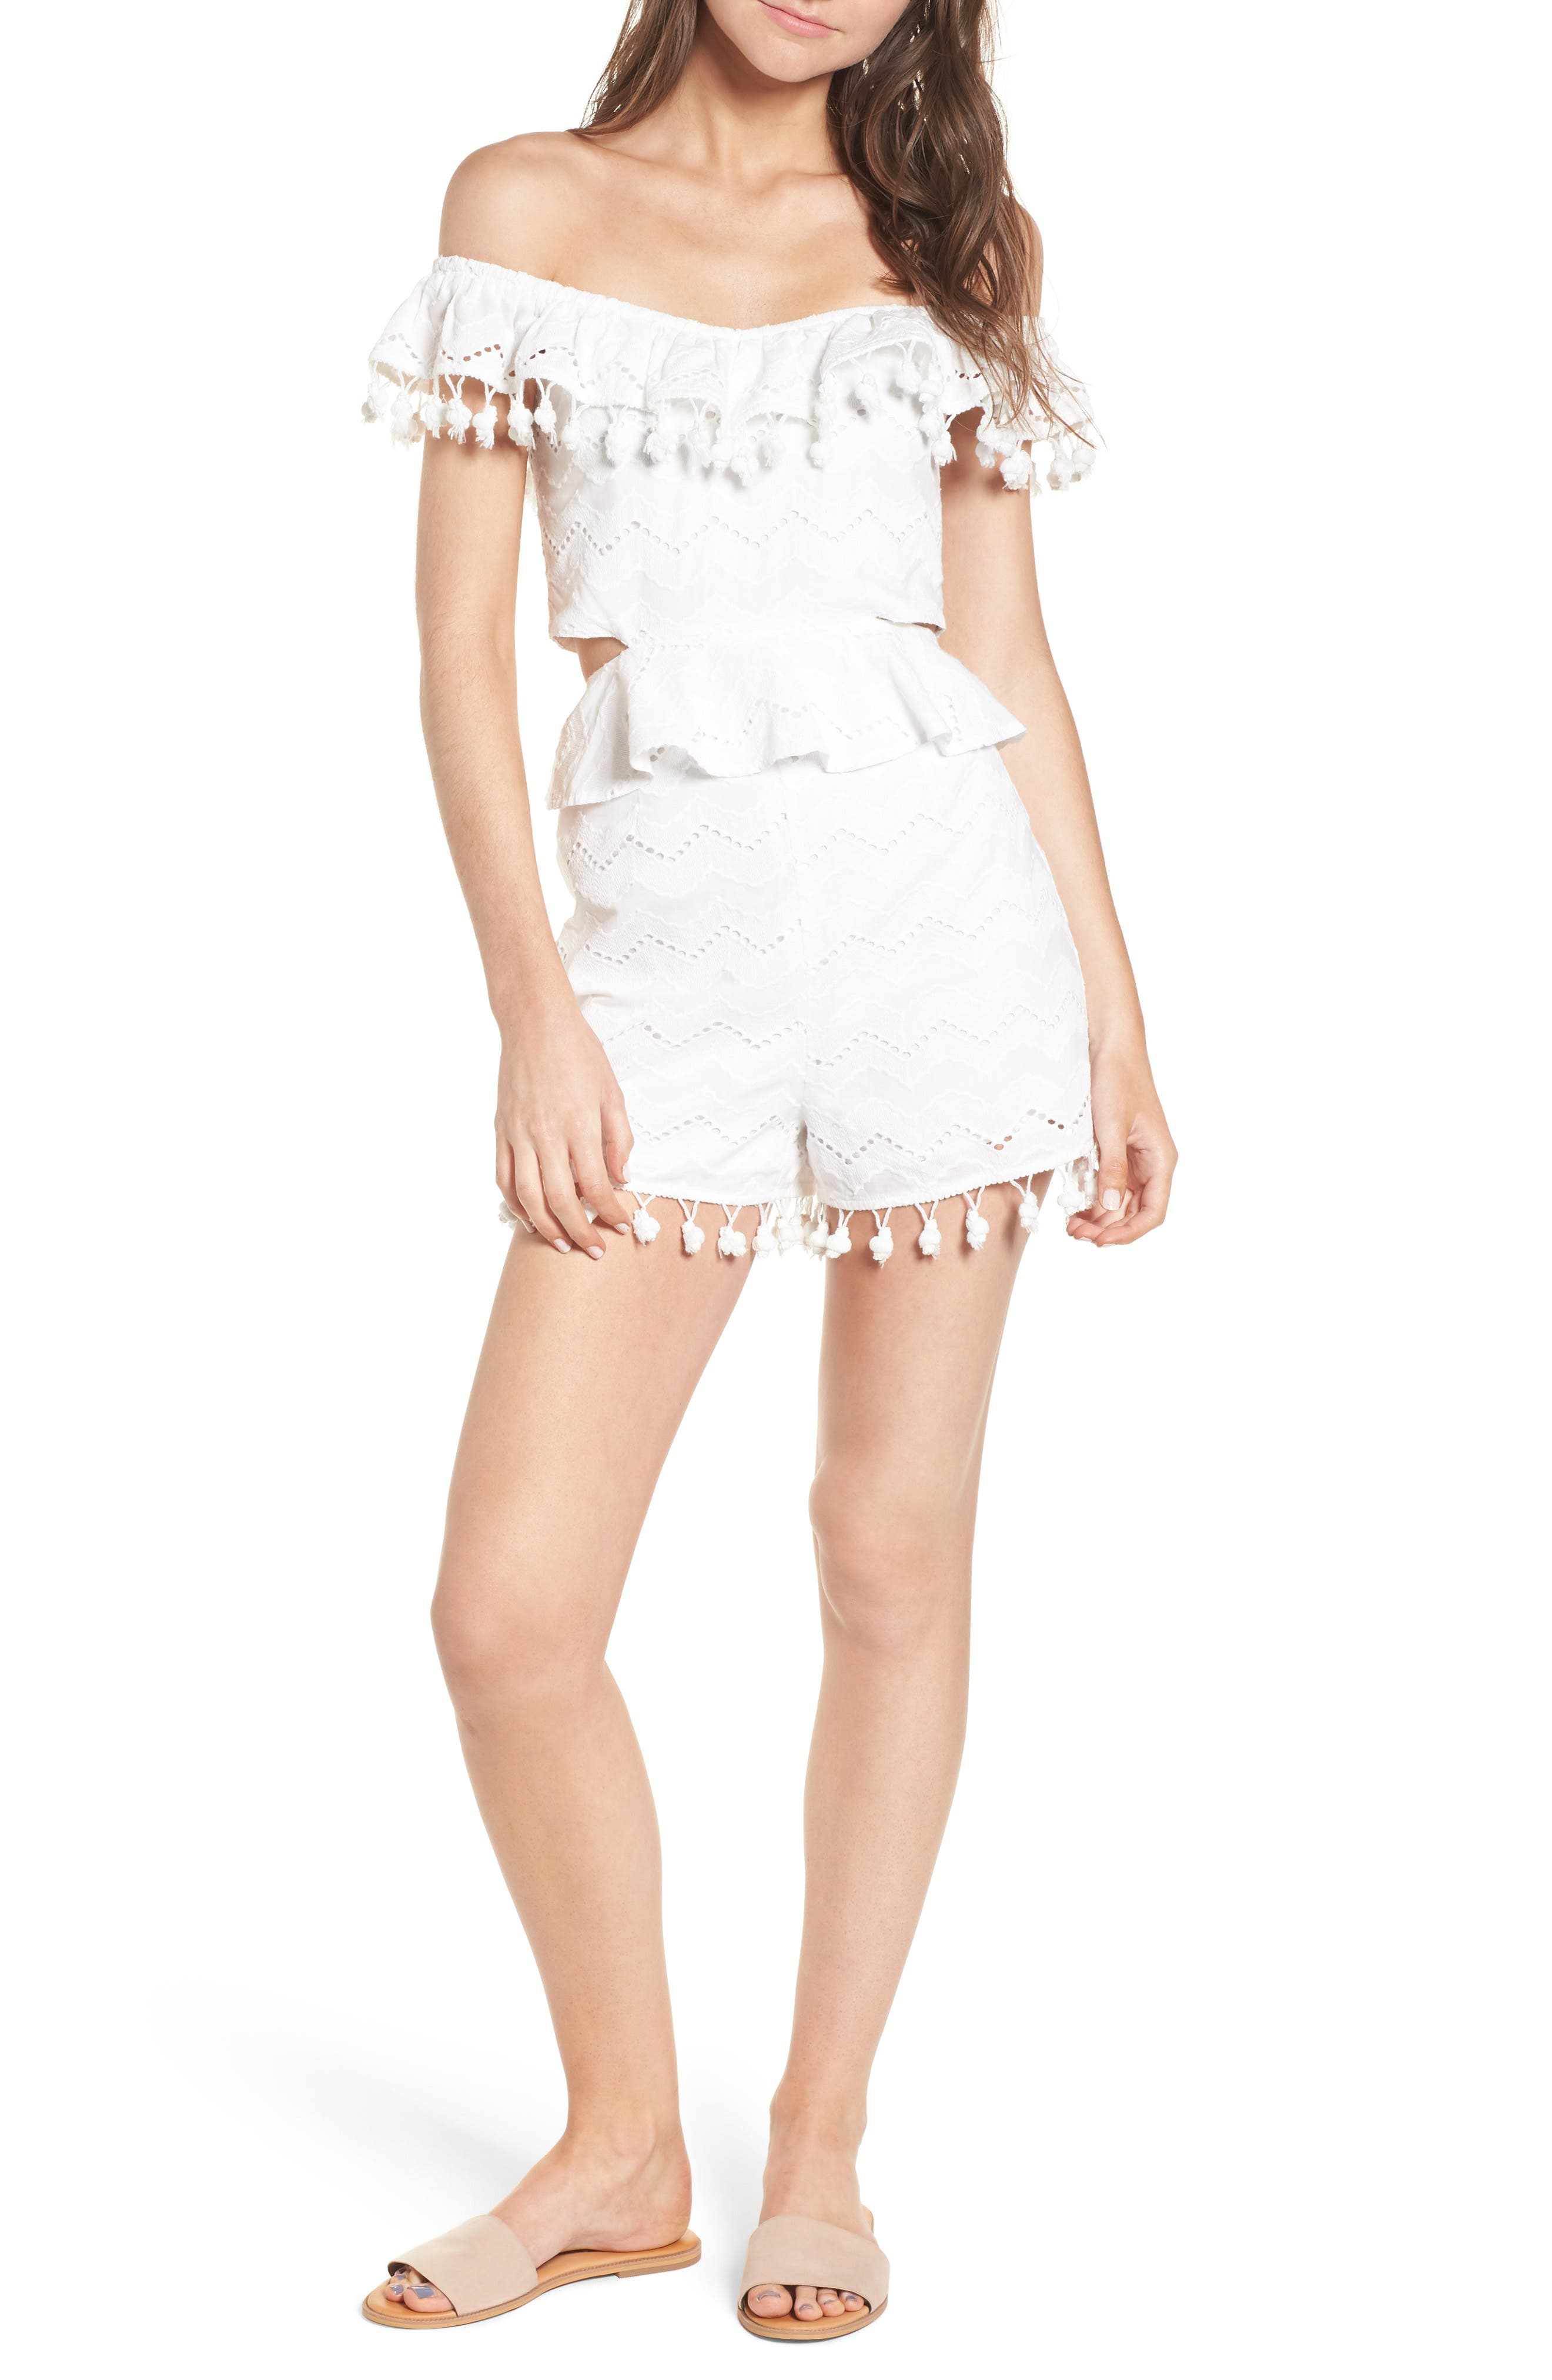 Pompom Cutout Off the Shoulder Romper,                             Main thumbnail 1, color,                             White